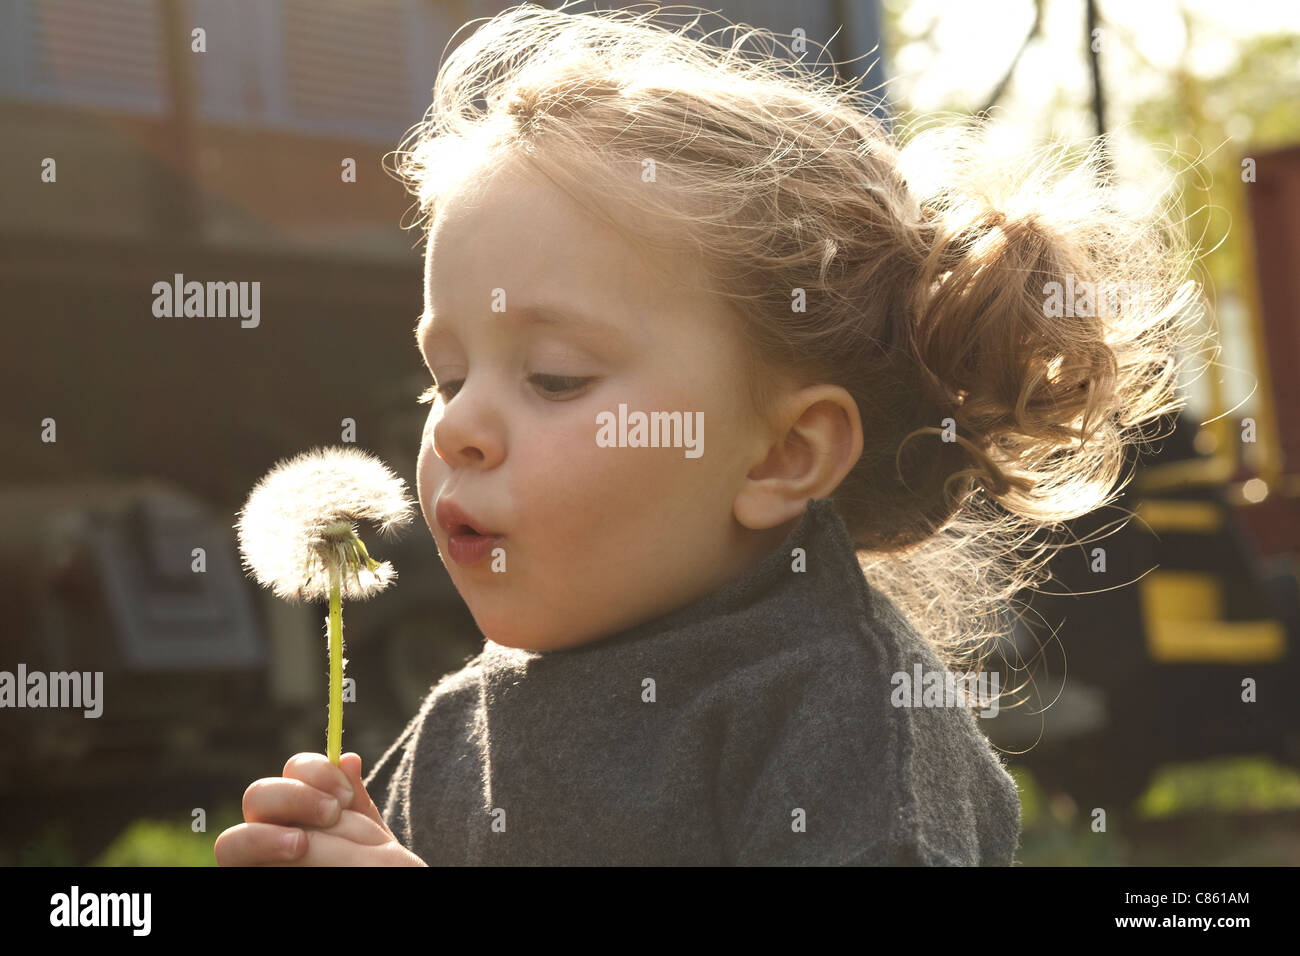 Child blowing a dandelion - Stock Image